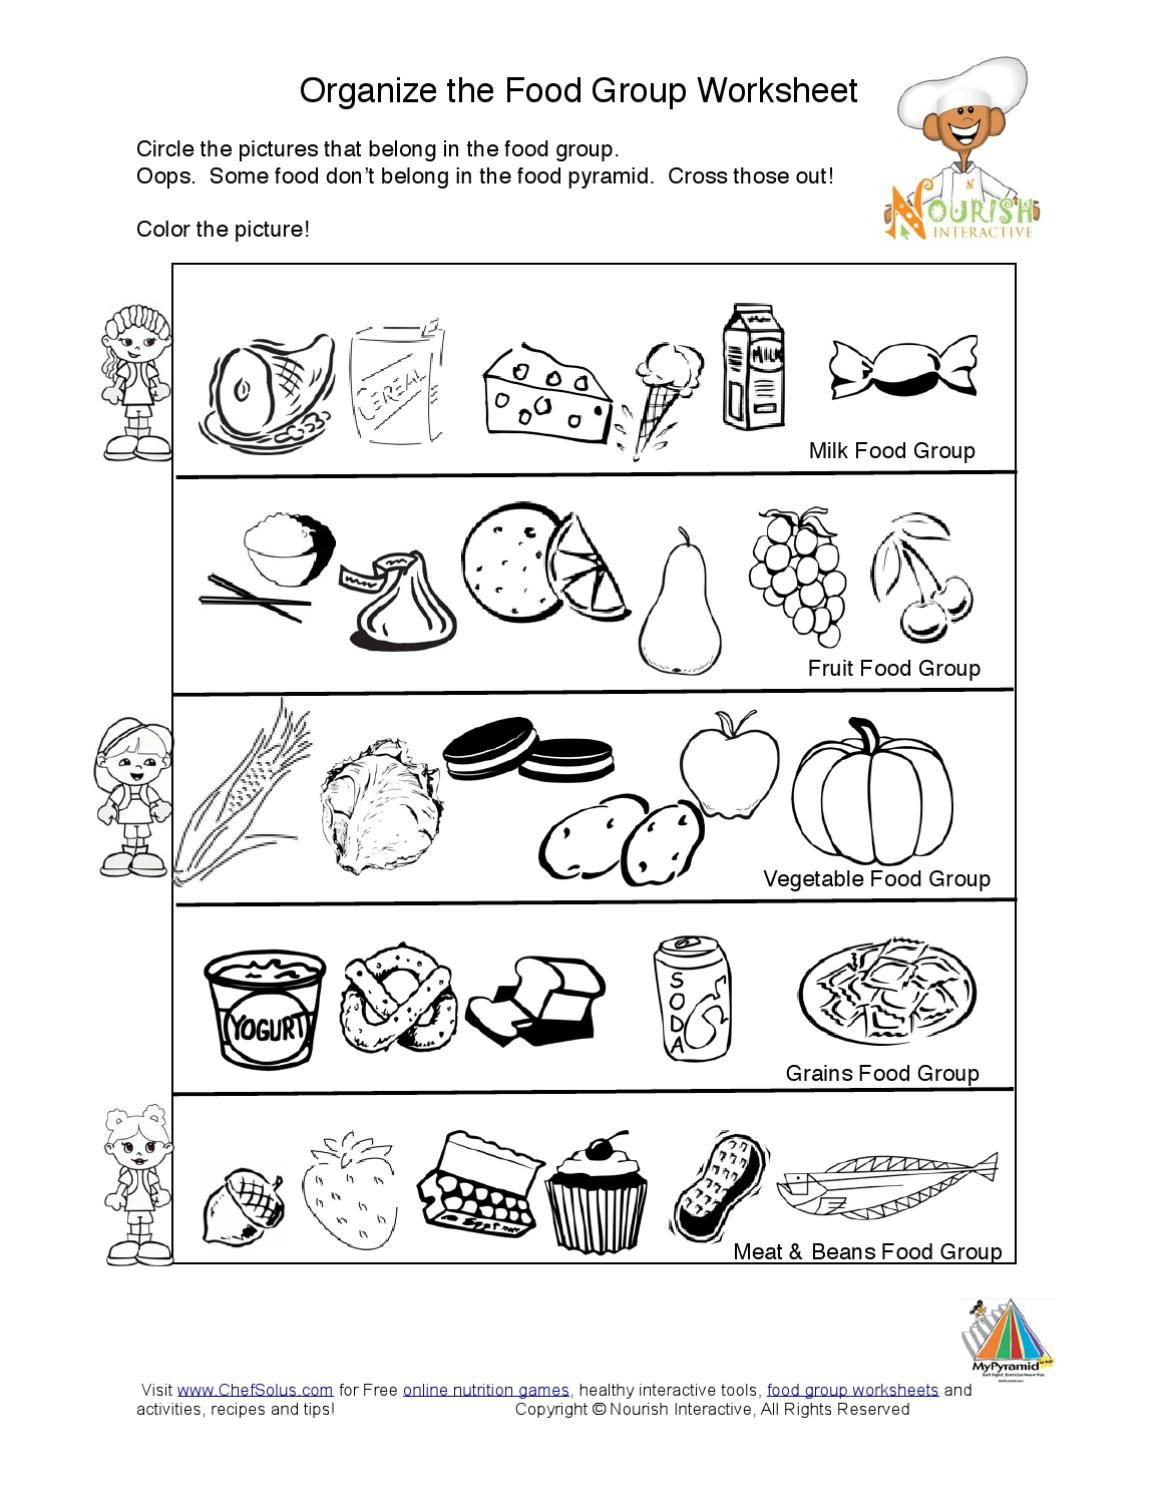 Kids Food Pyramid Food Groups Learning Nutrition Worksheet K In 2020 Food Pyramid Group Meals Kids Nutrition